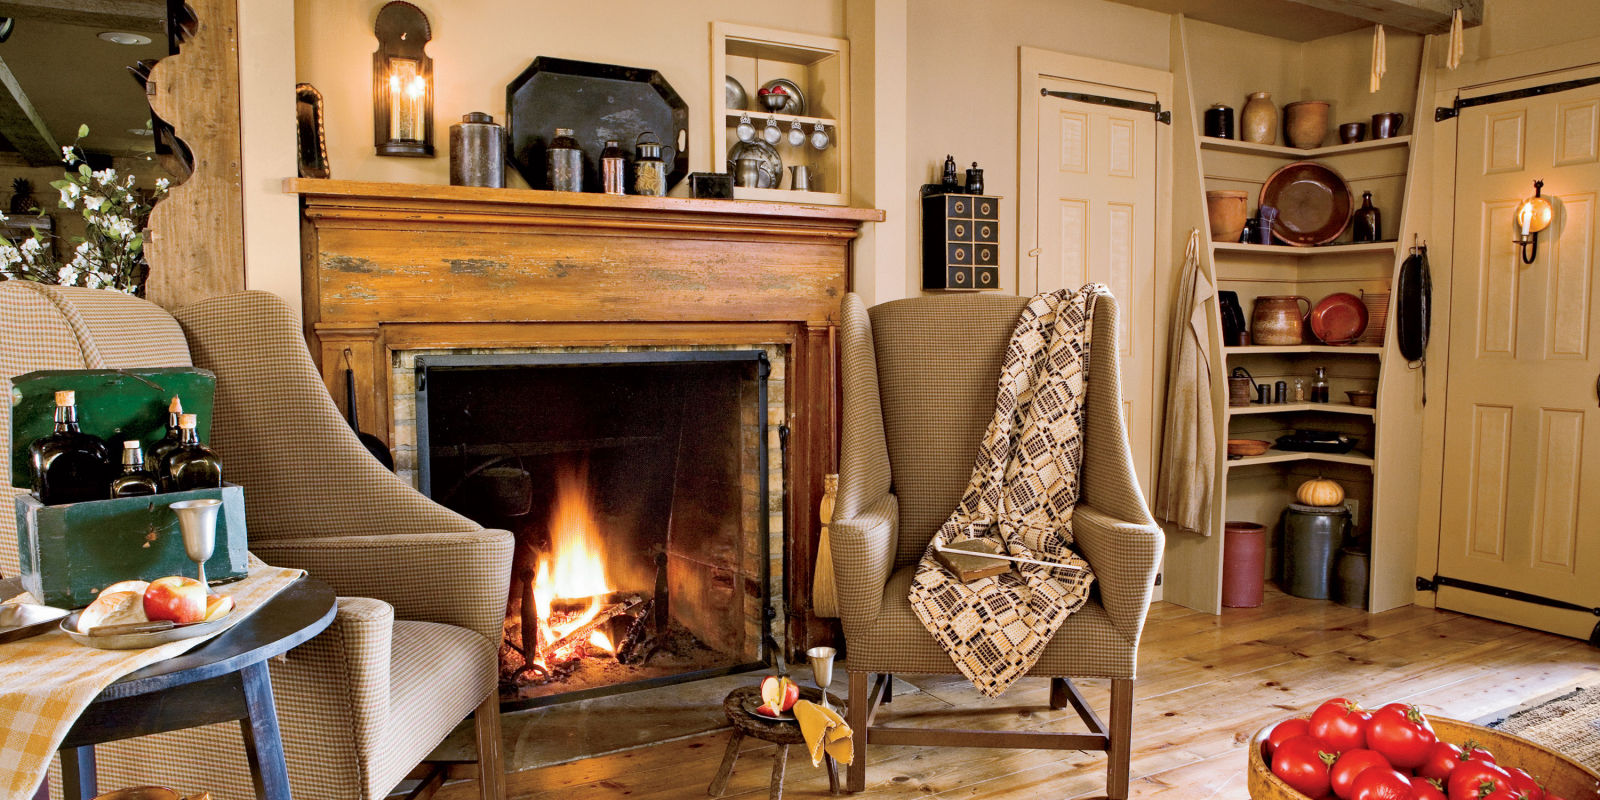 Fireplace Mantel Decorating Ideas 40 Fireplace Design Ideas  Fireplace Mantel Decorating Ideas